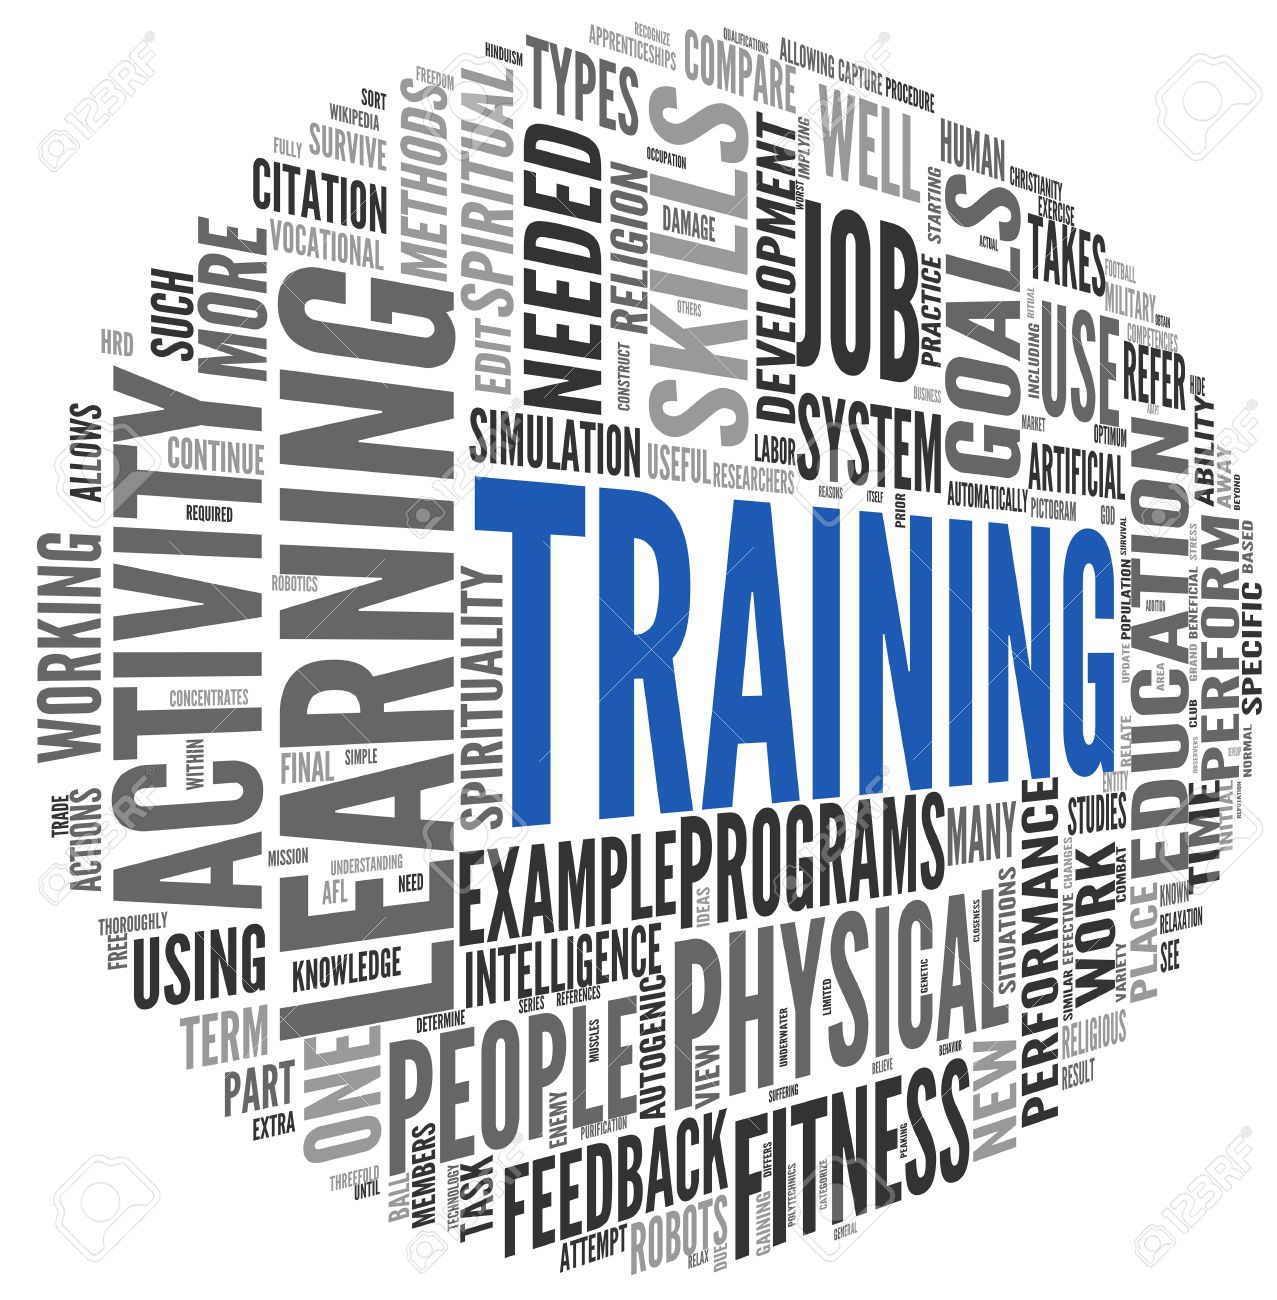 18173630-Training-and-education-related-words-concept-in-tag-cloud-Stock-Photo